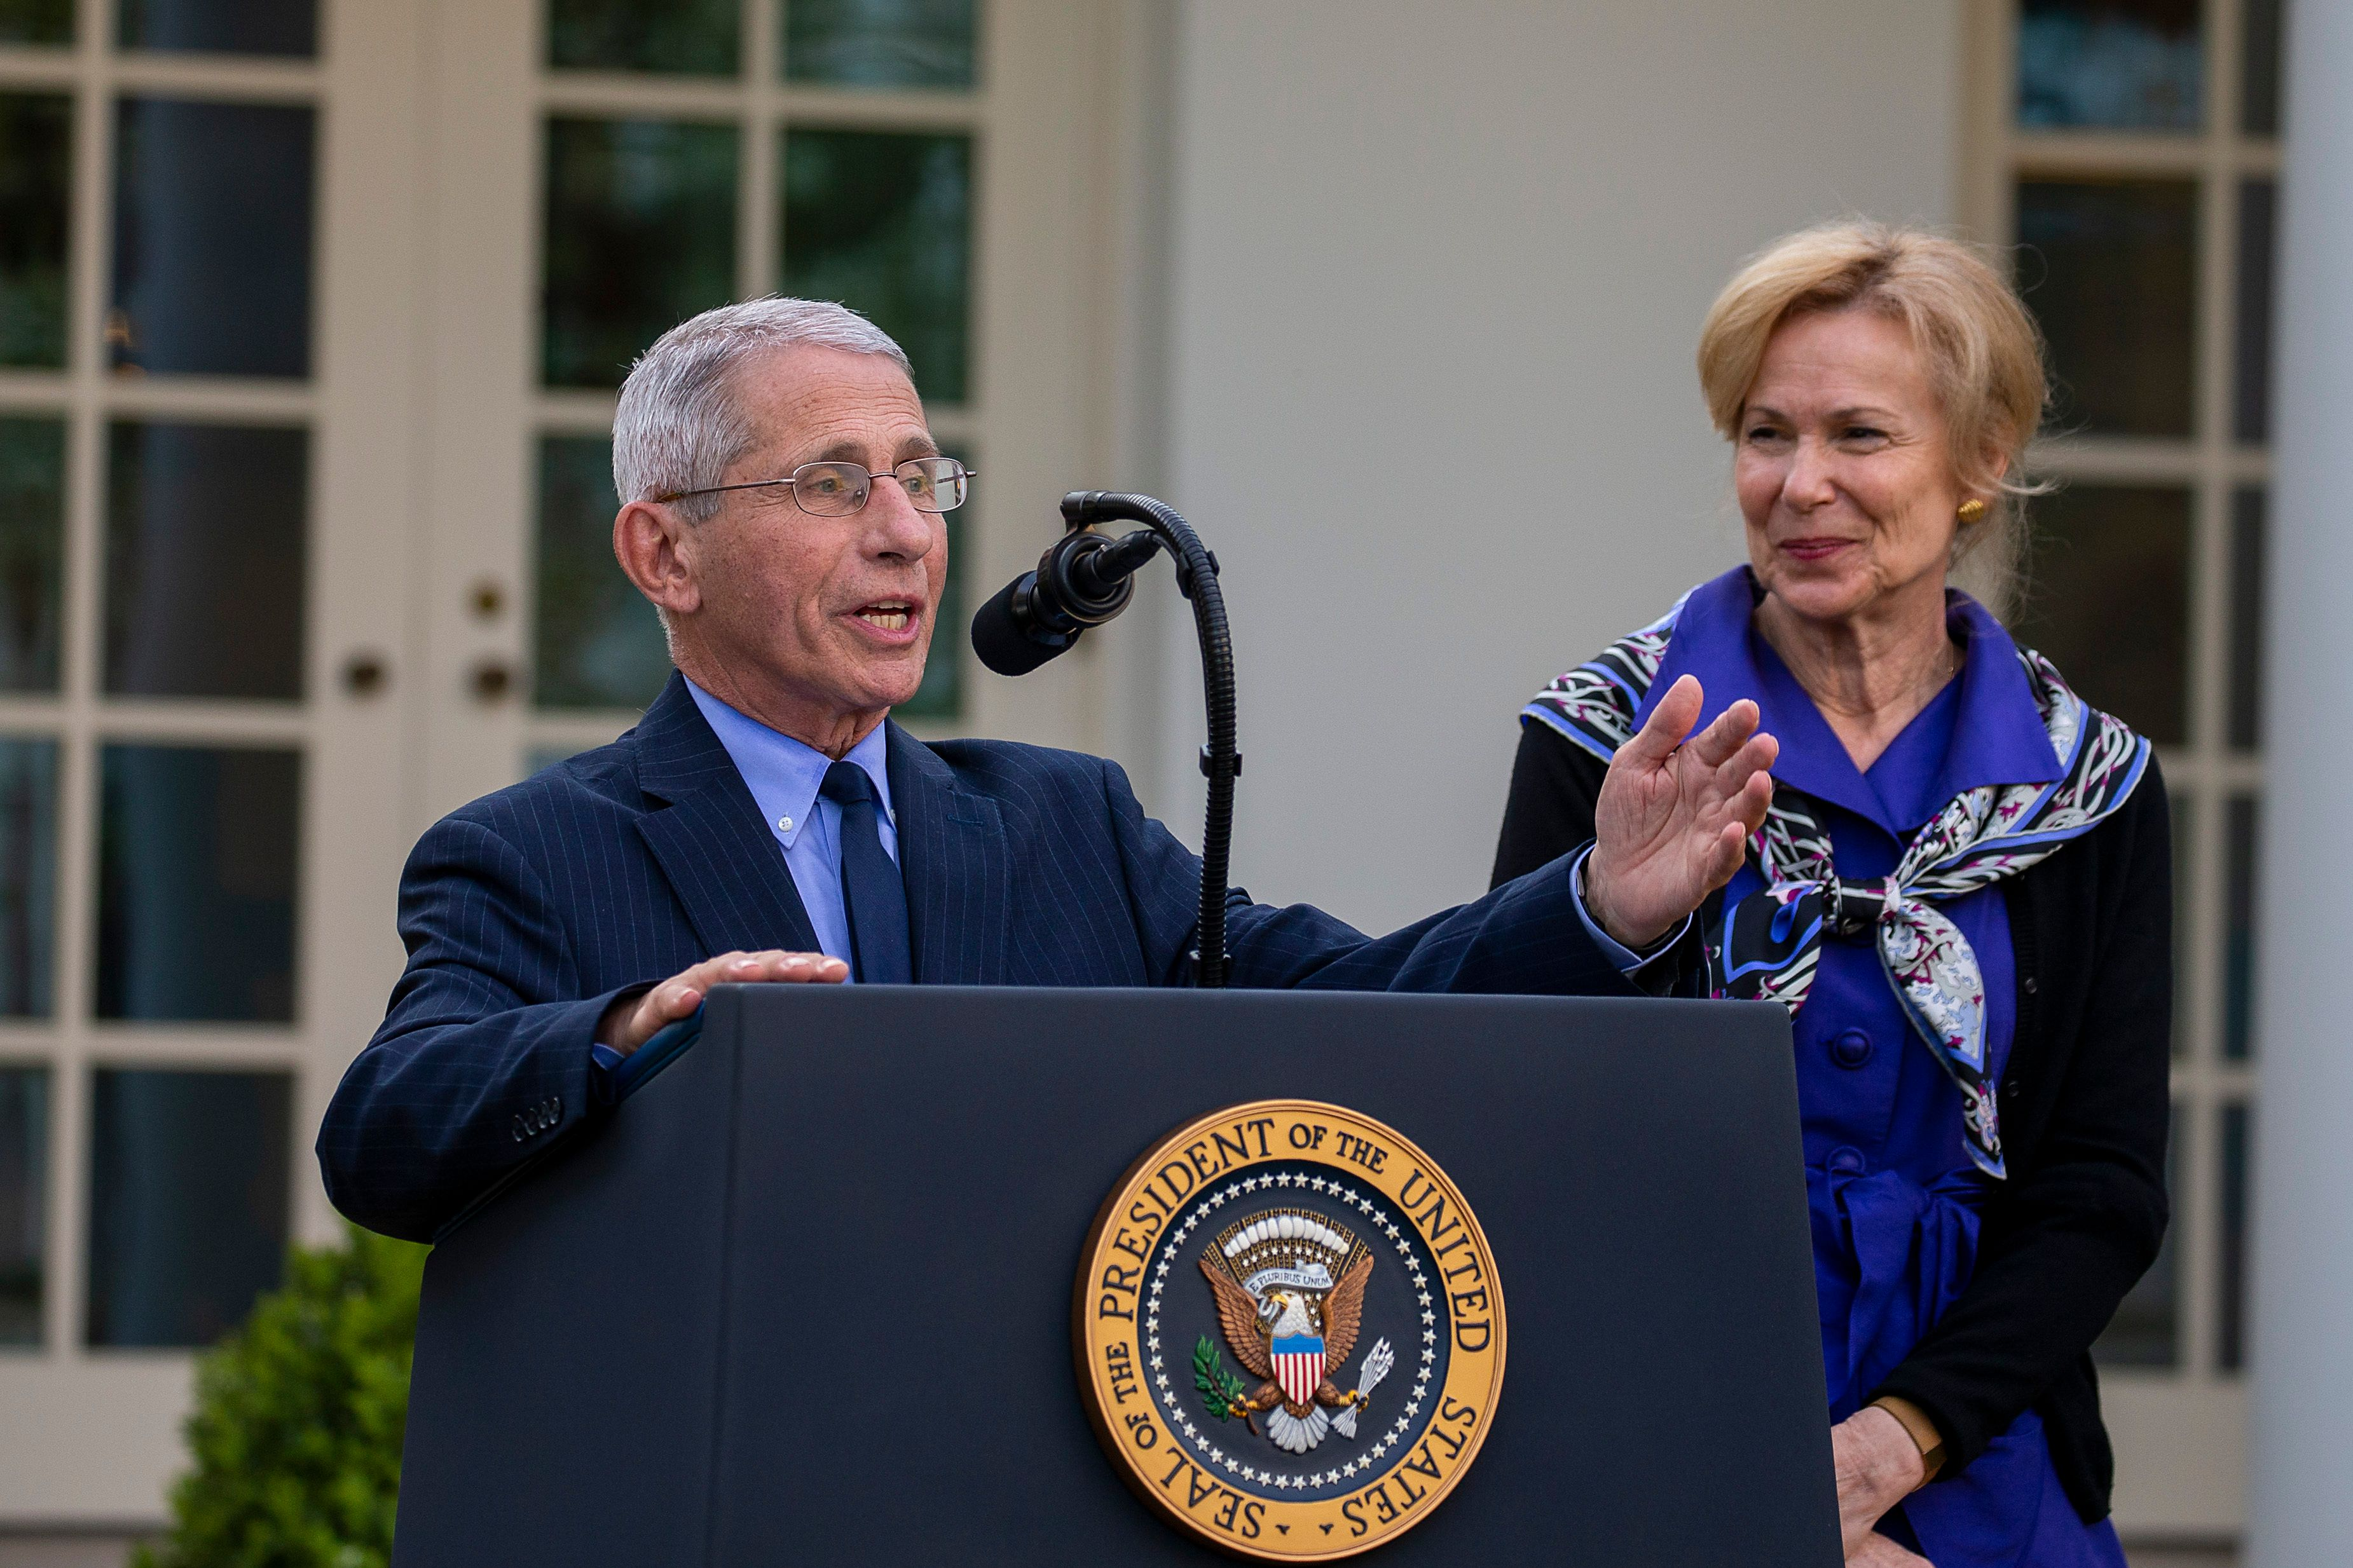 Anthony Fauci and Deborah Birx speak in the Rose Garden on March 29, 2020, during the onset of the COVID-19 pandemic in the U